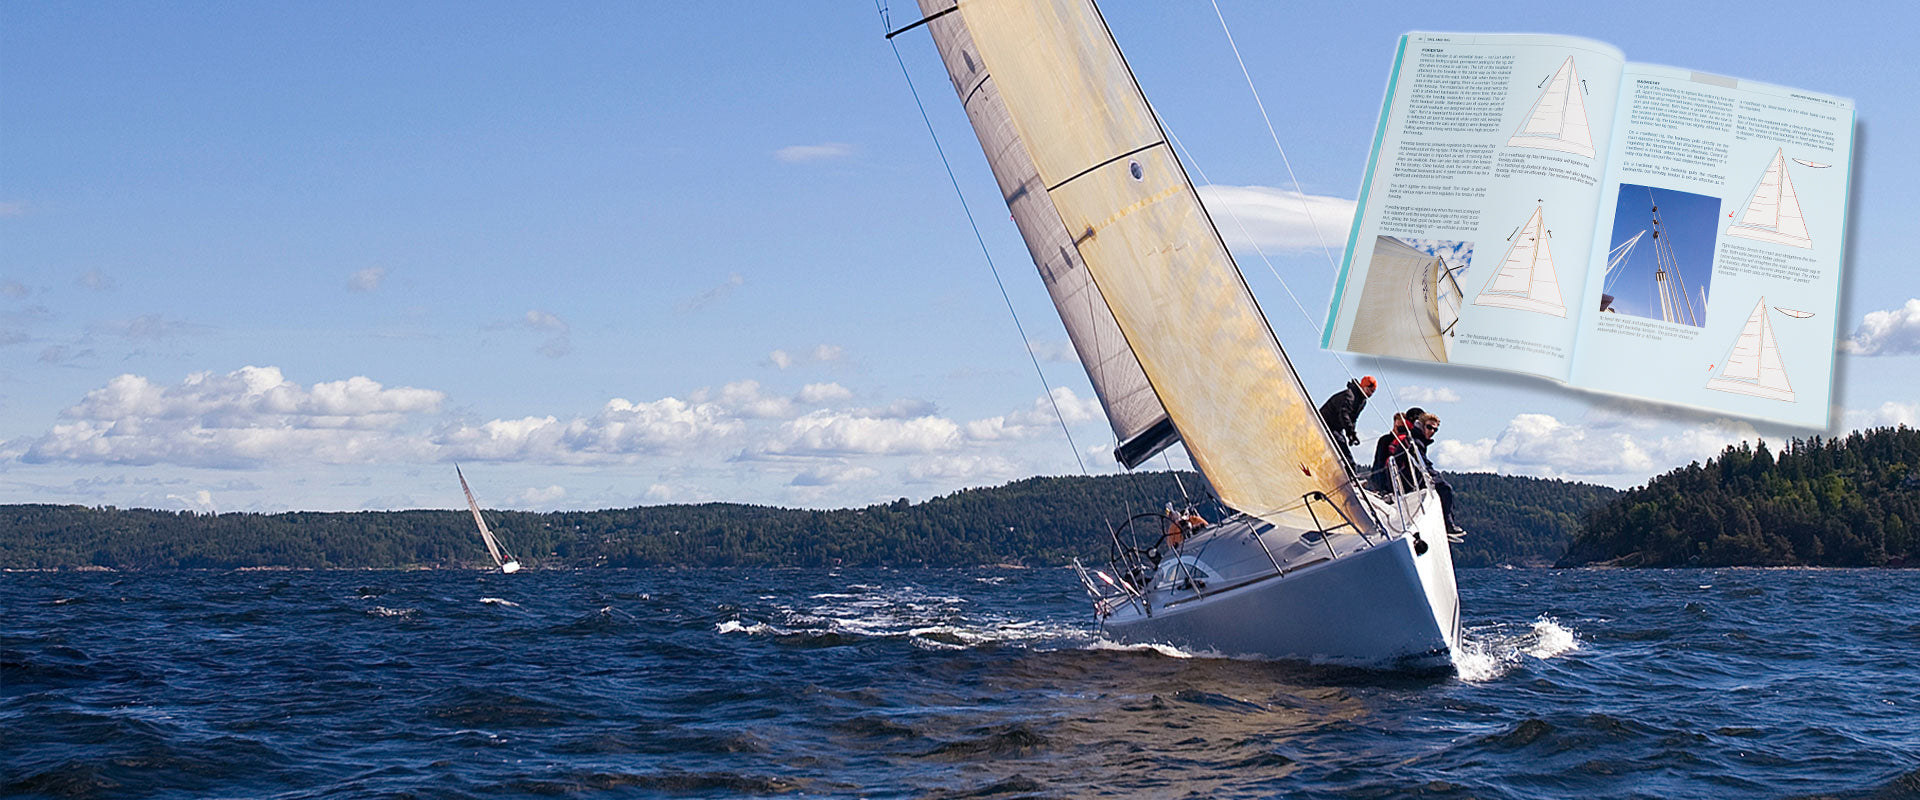 Sail faster, safer and more comfortable